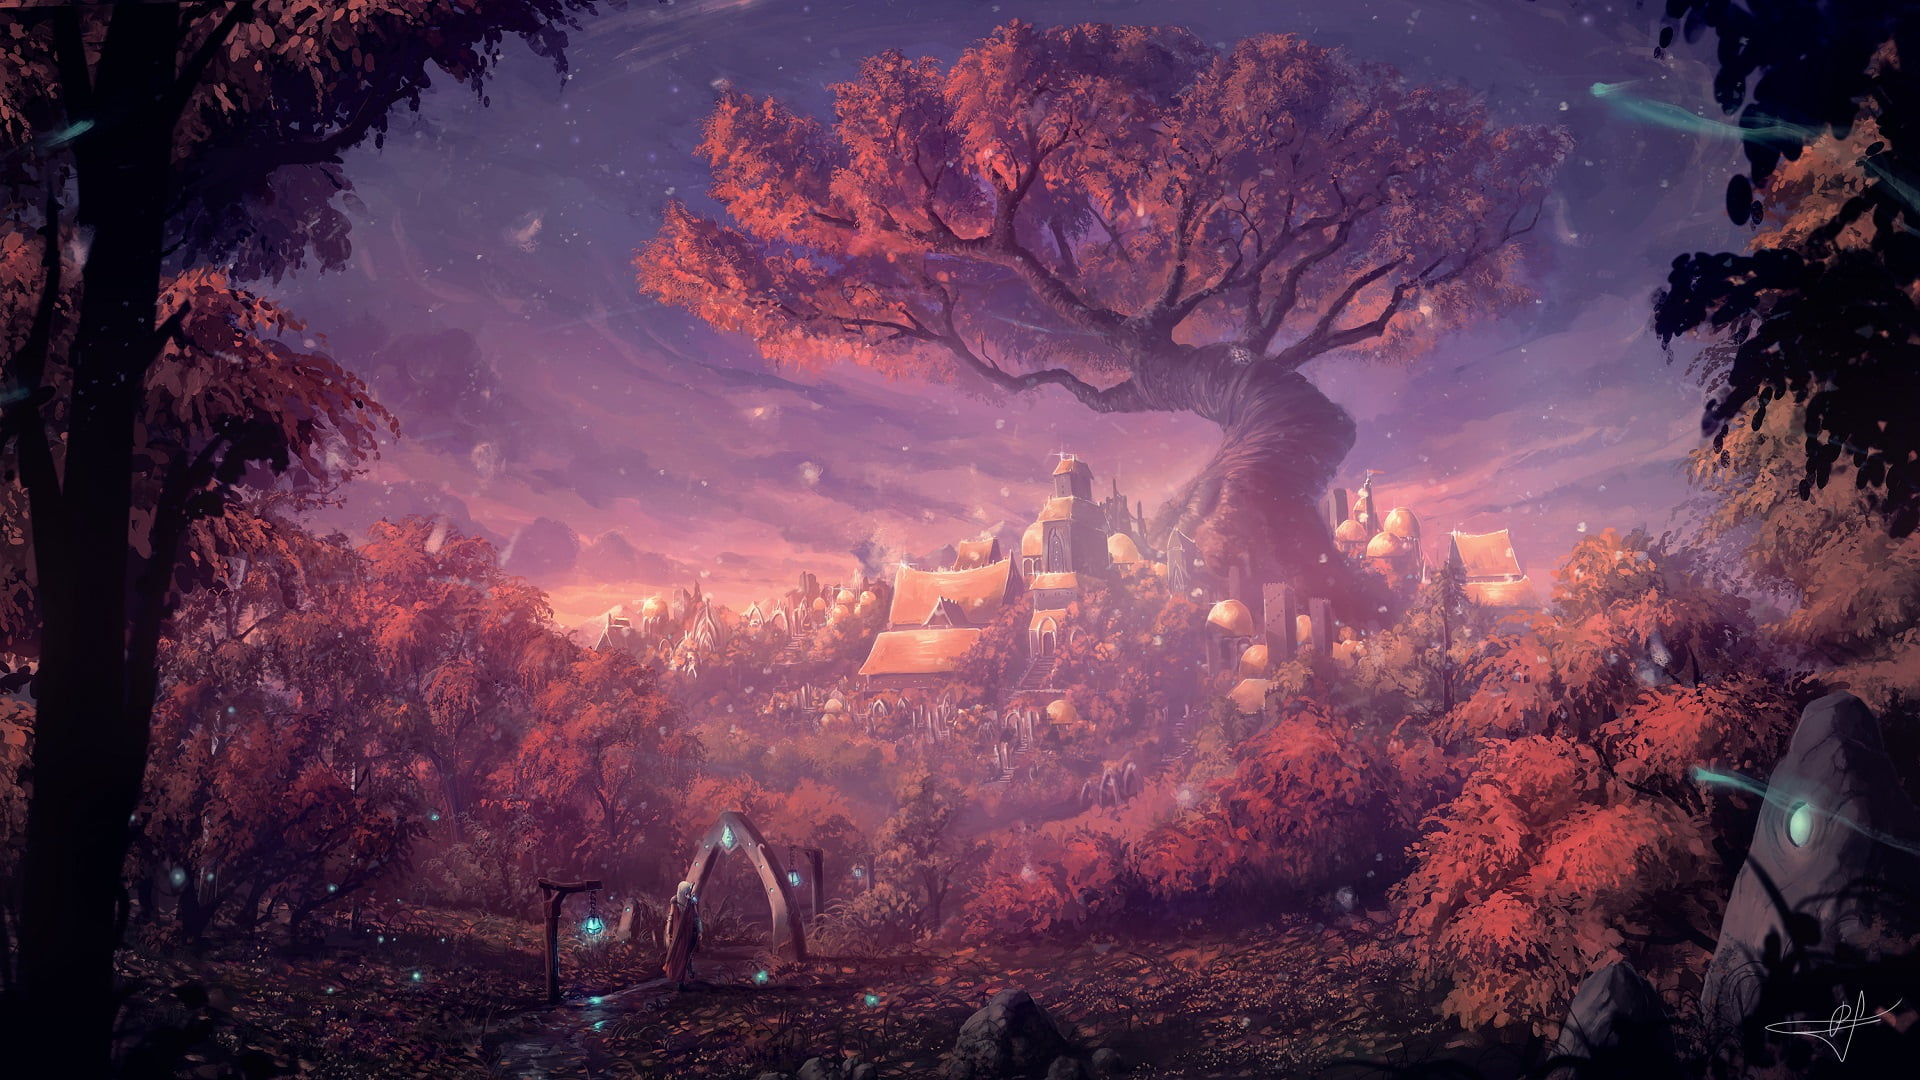 Painting of tree in center of rural town HD wallpaper Wallpaper 1920x1080